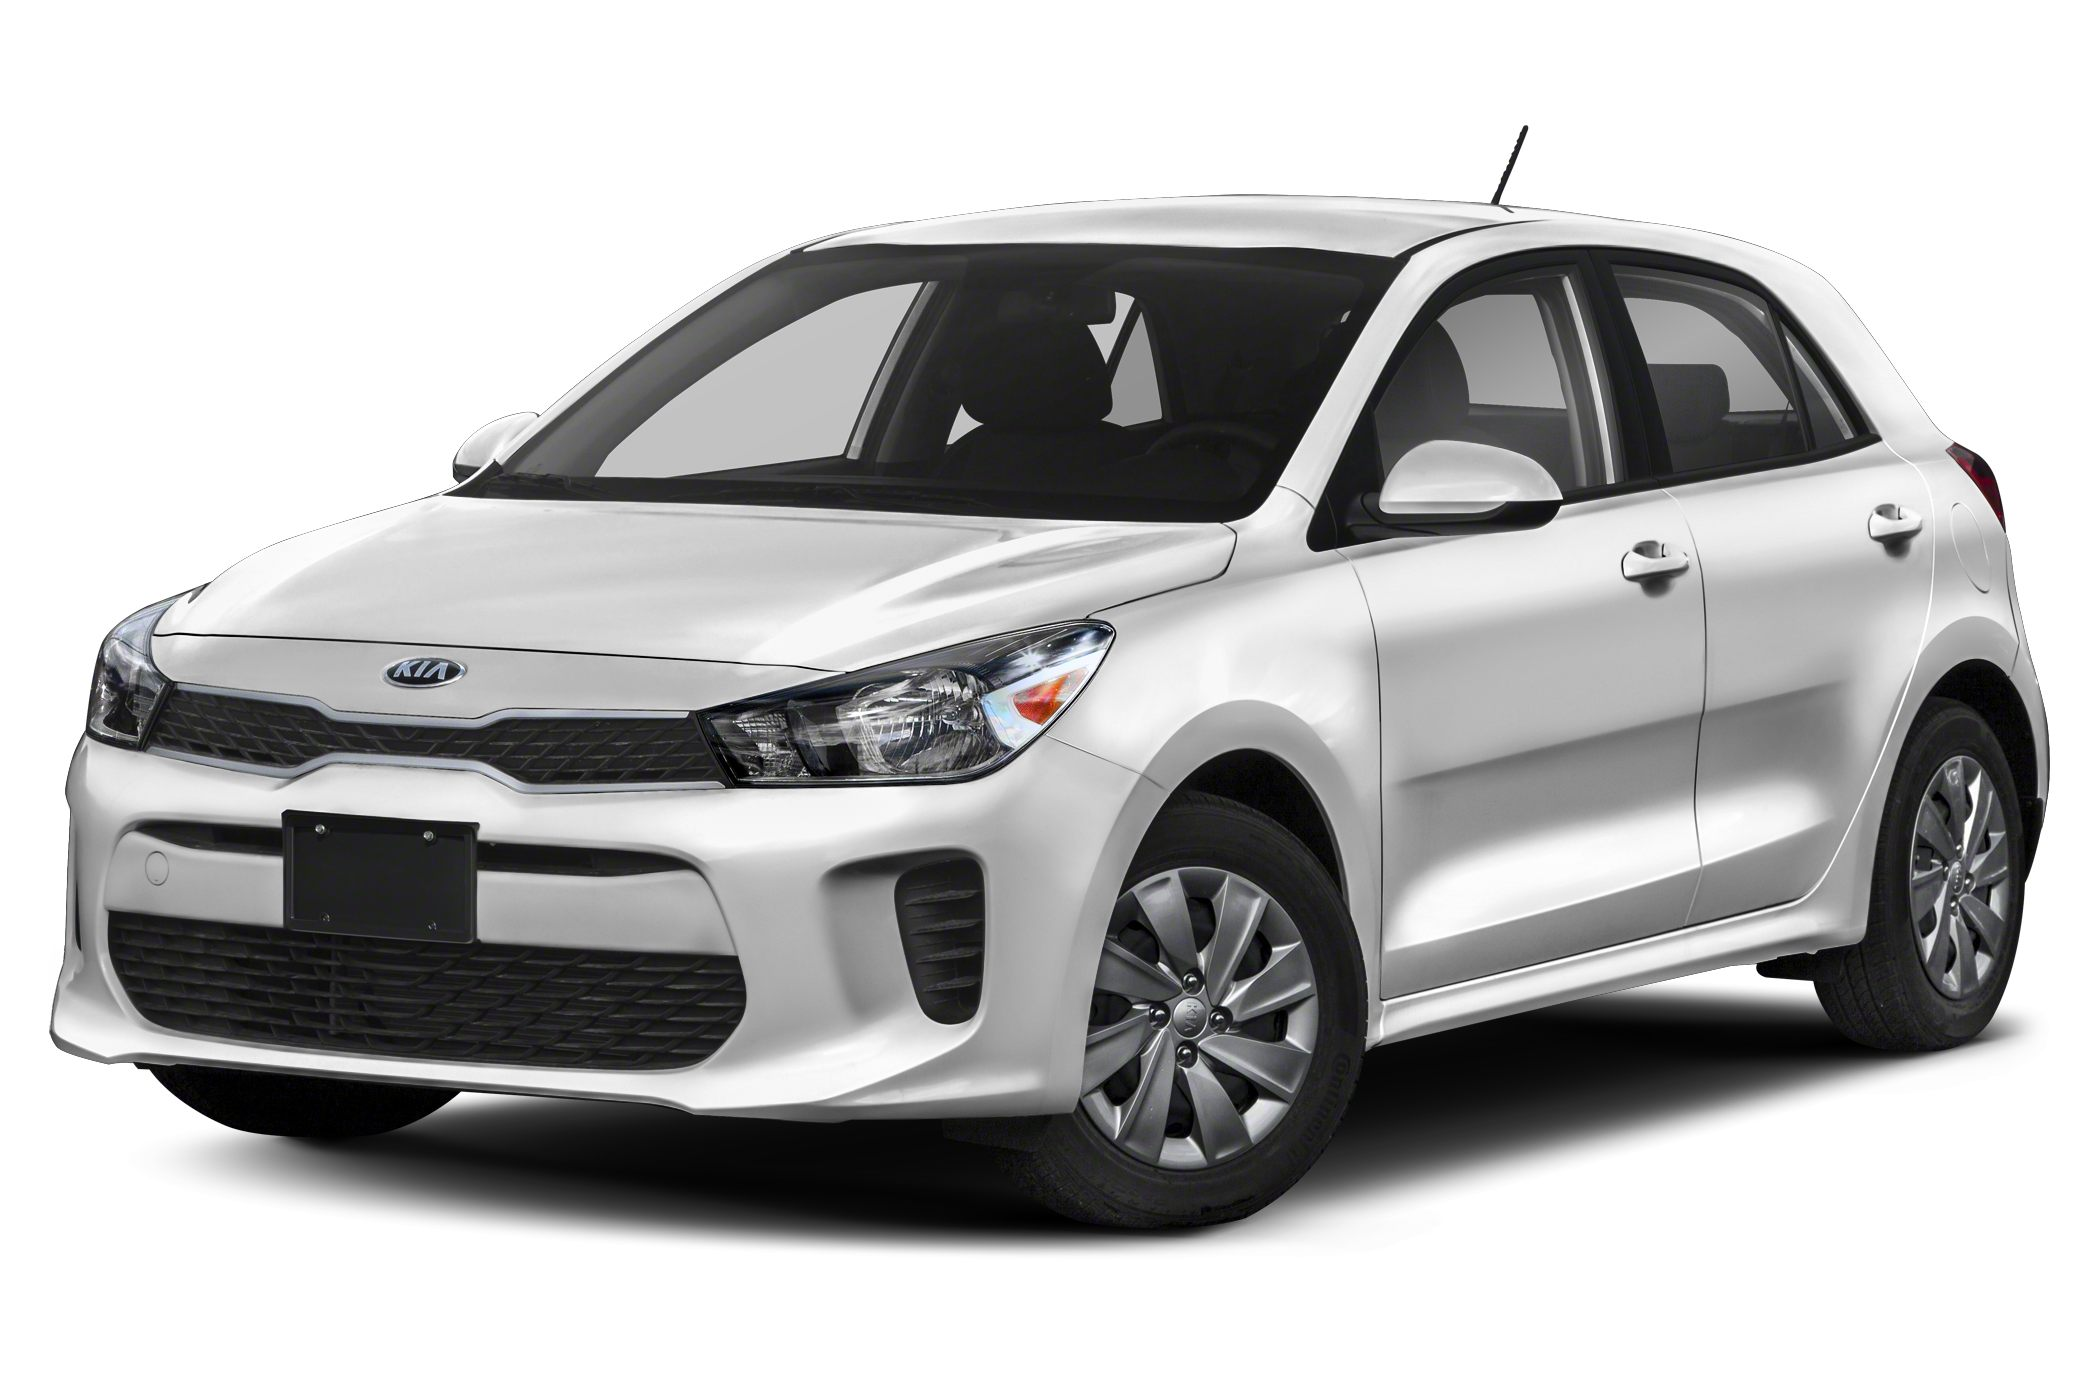 2020 All Kia Rio Release Date and Concept